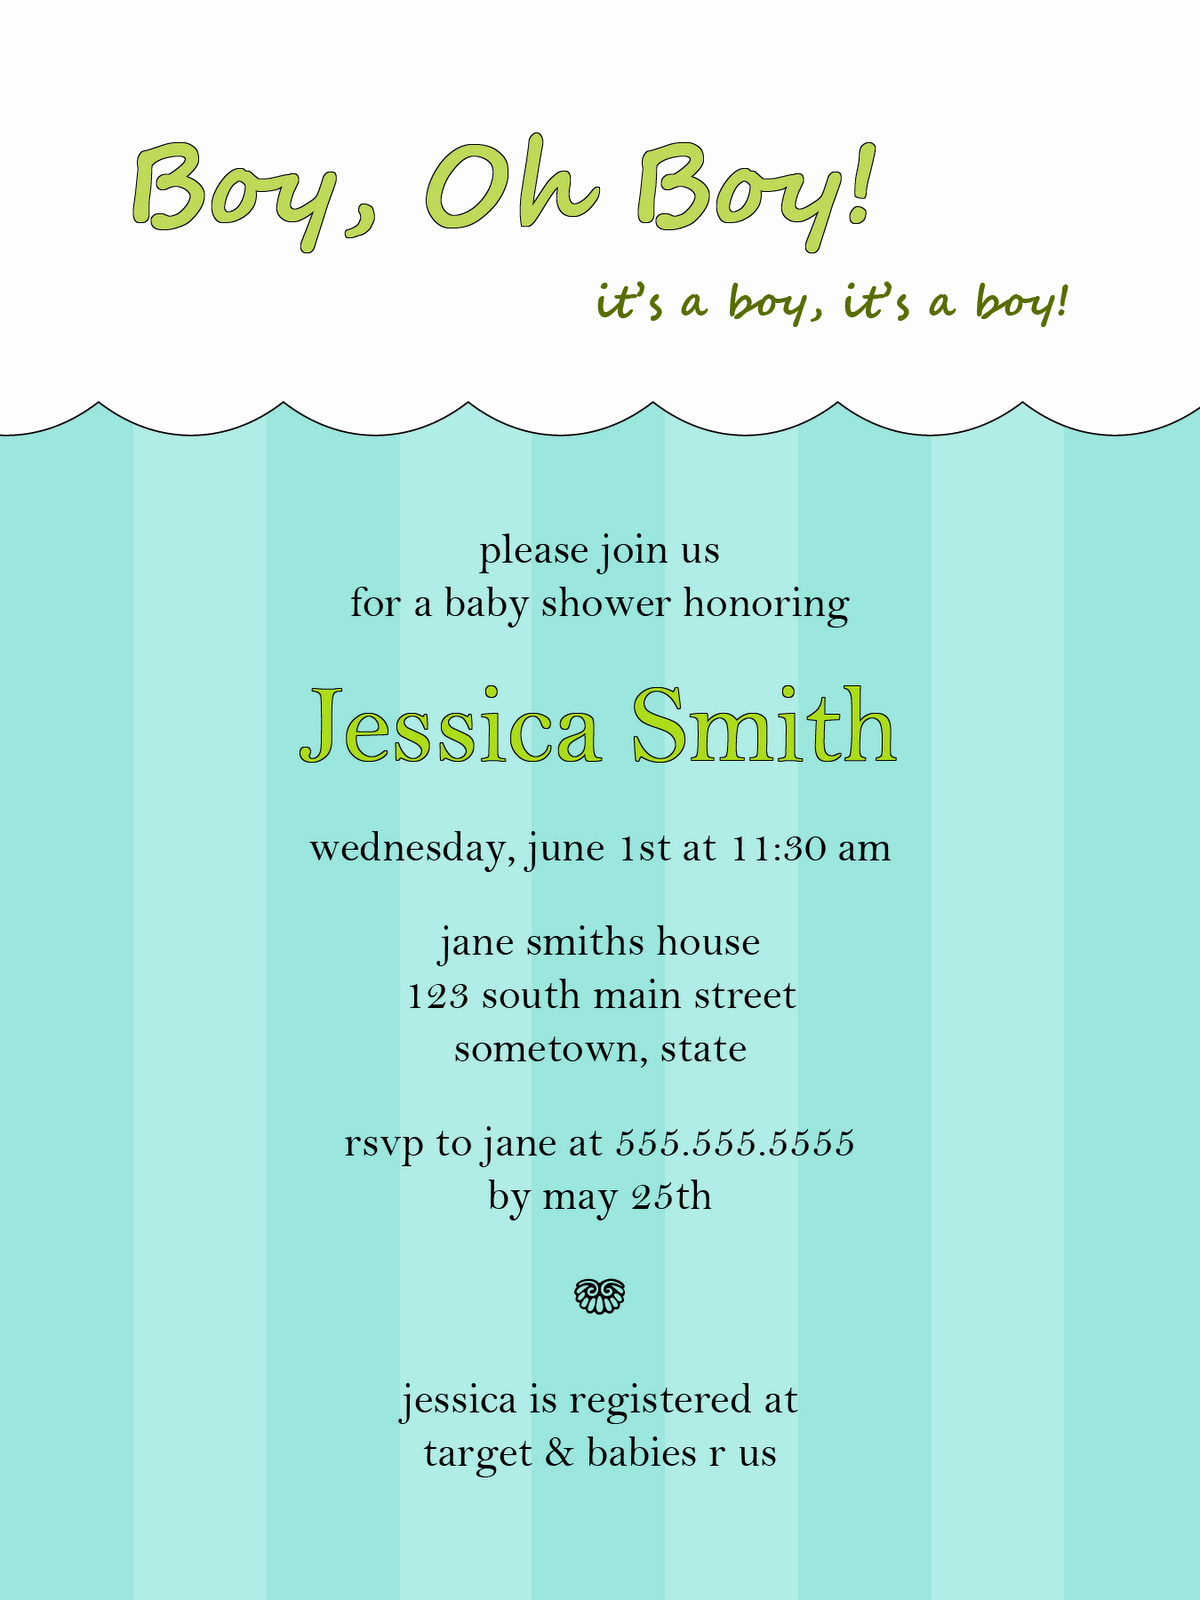 Baby Boy Announcements Free Templates Fresh Loving Life Designs Free Graphic Designs and Printables